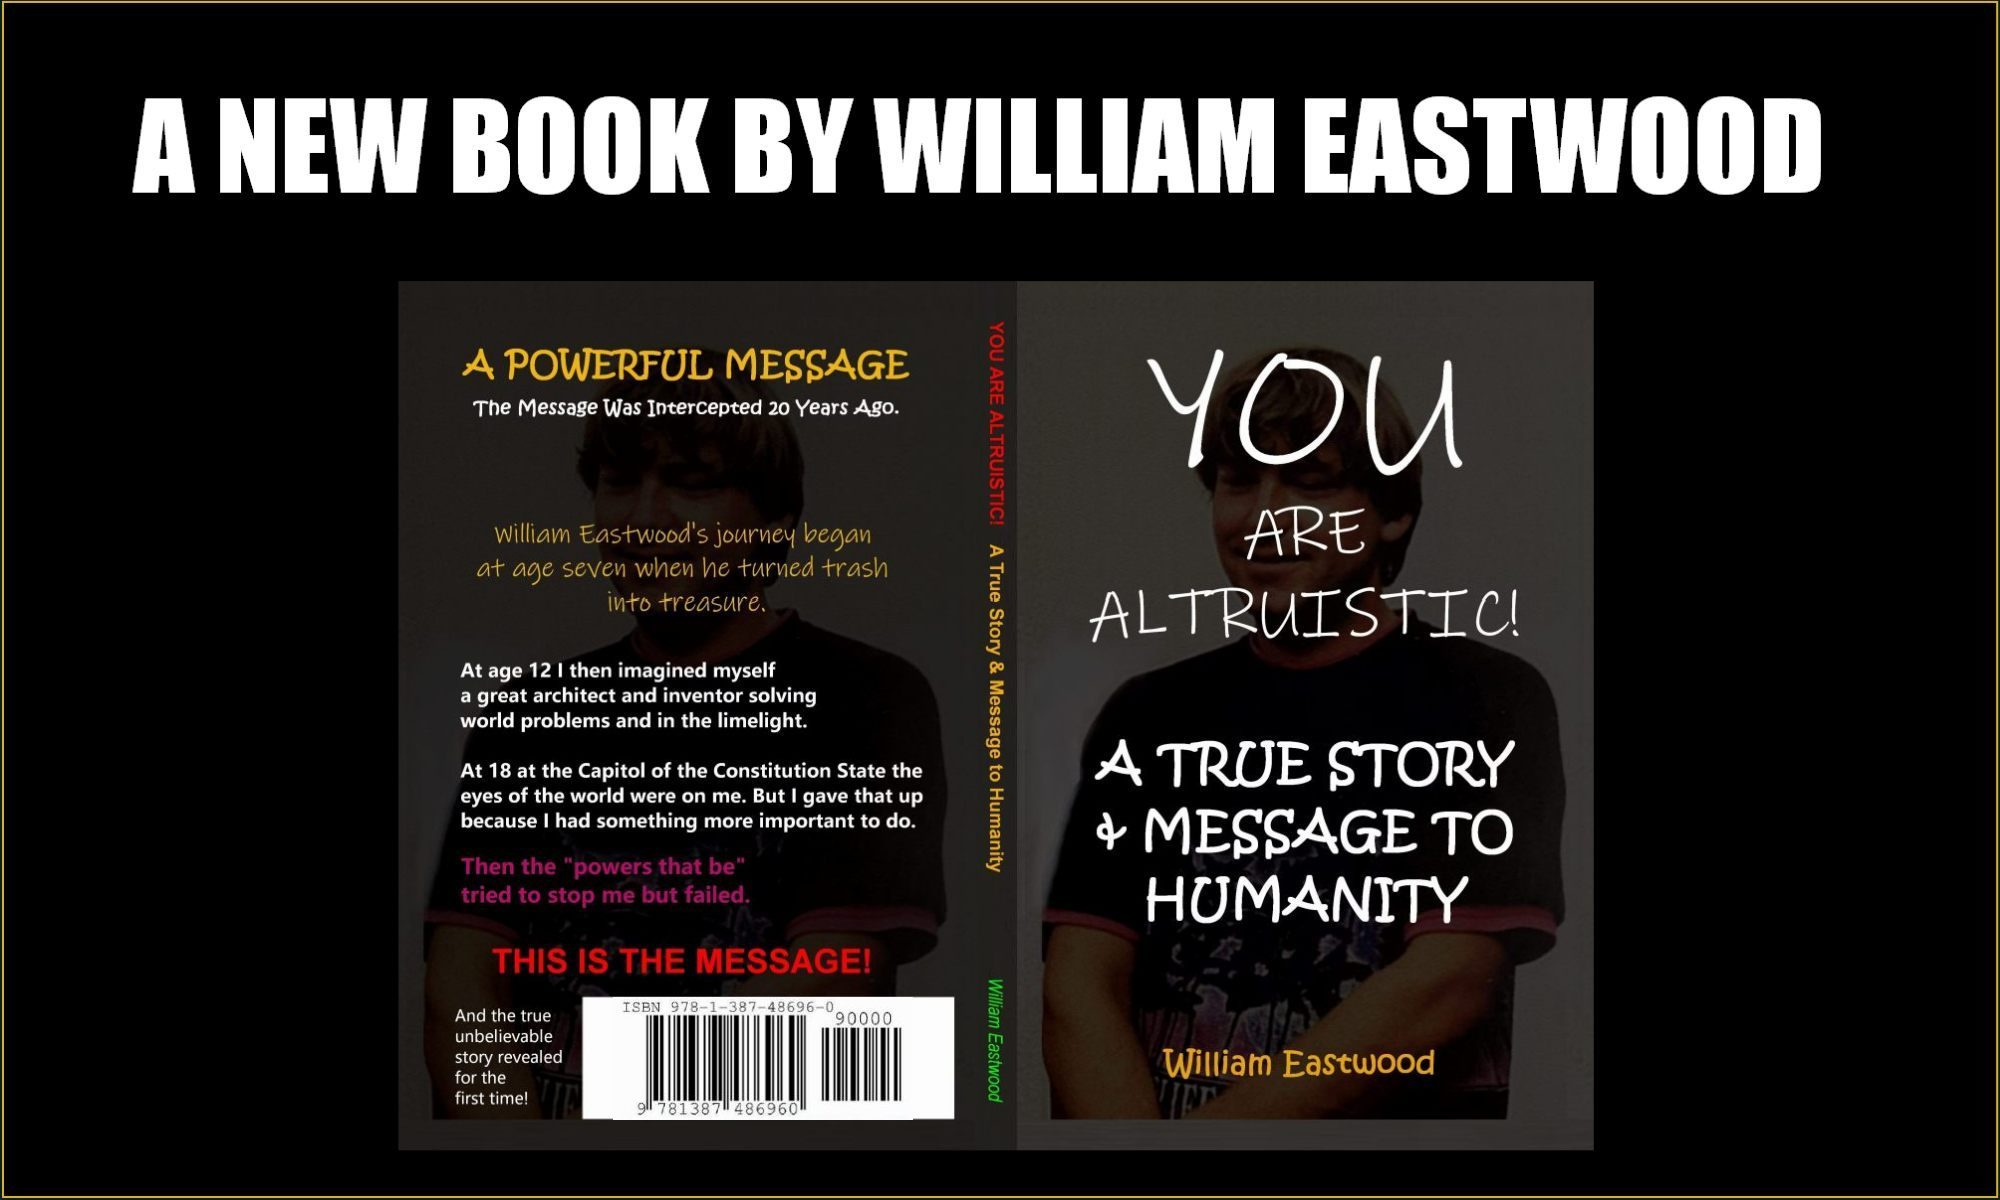 A contemporary prophet and his message for humanity revealed for the first time. Is William Eastwood the Dragon Slayer? The government tried to stop him but failed.